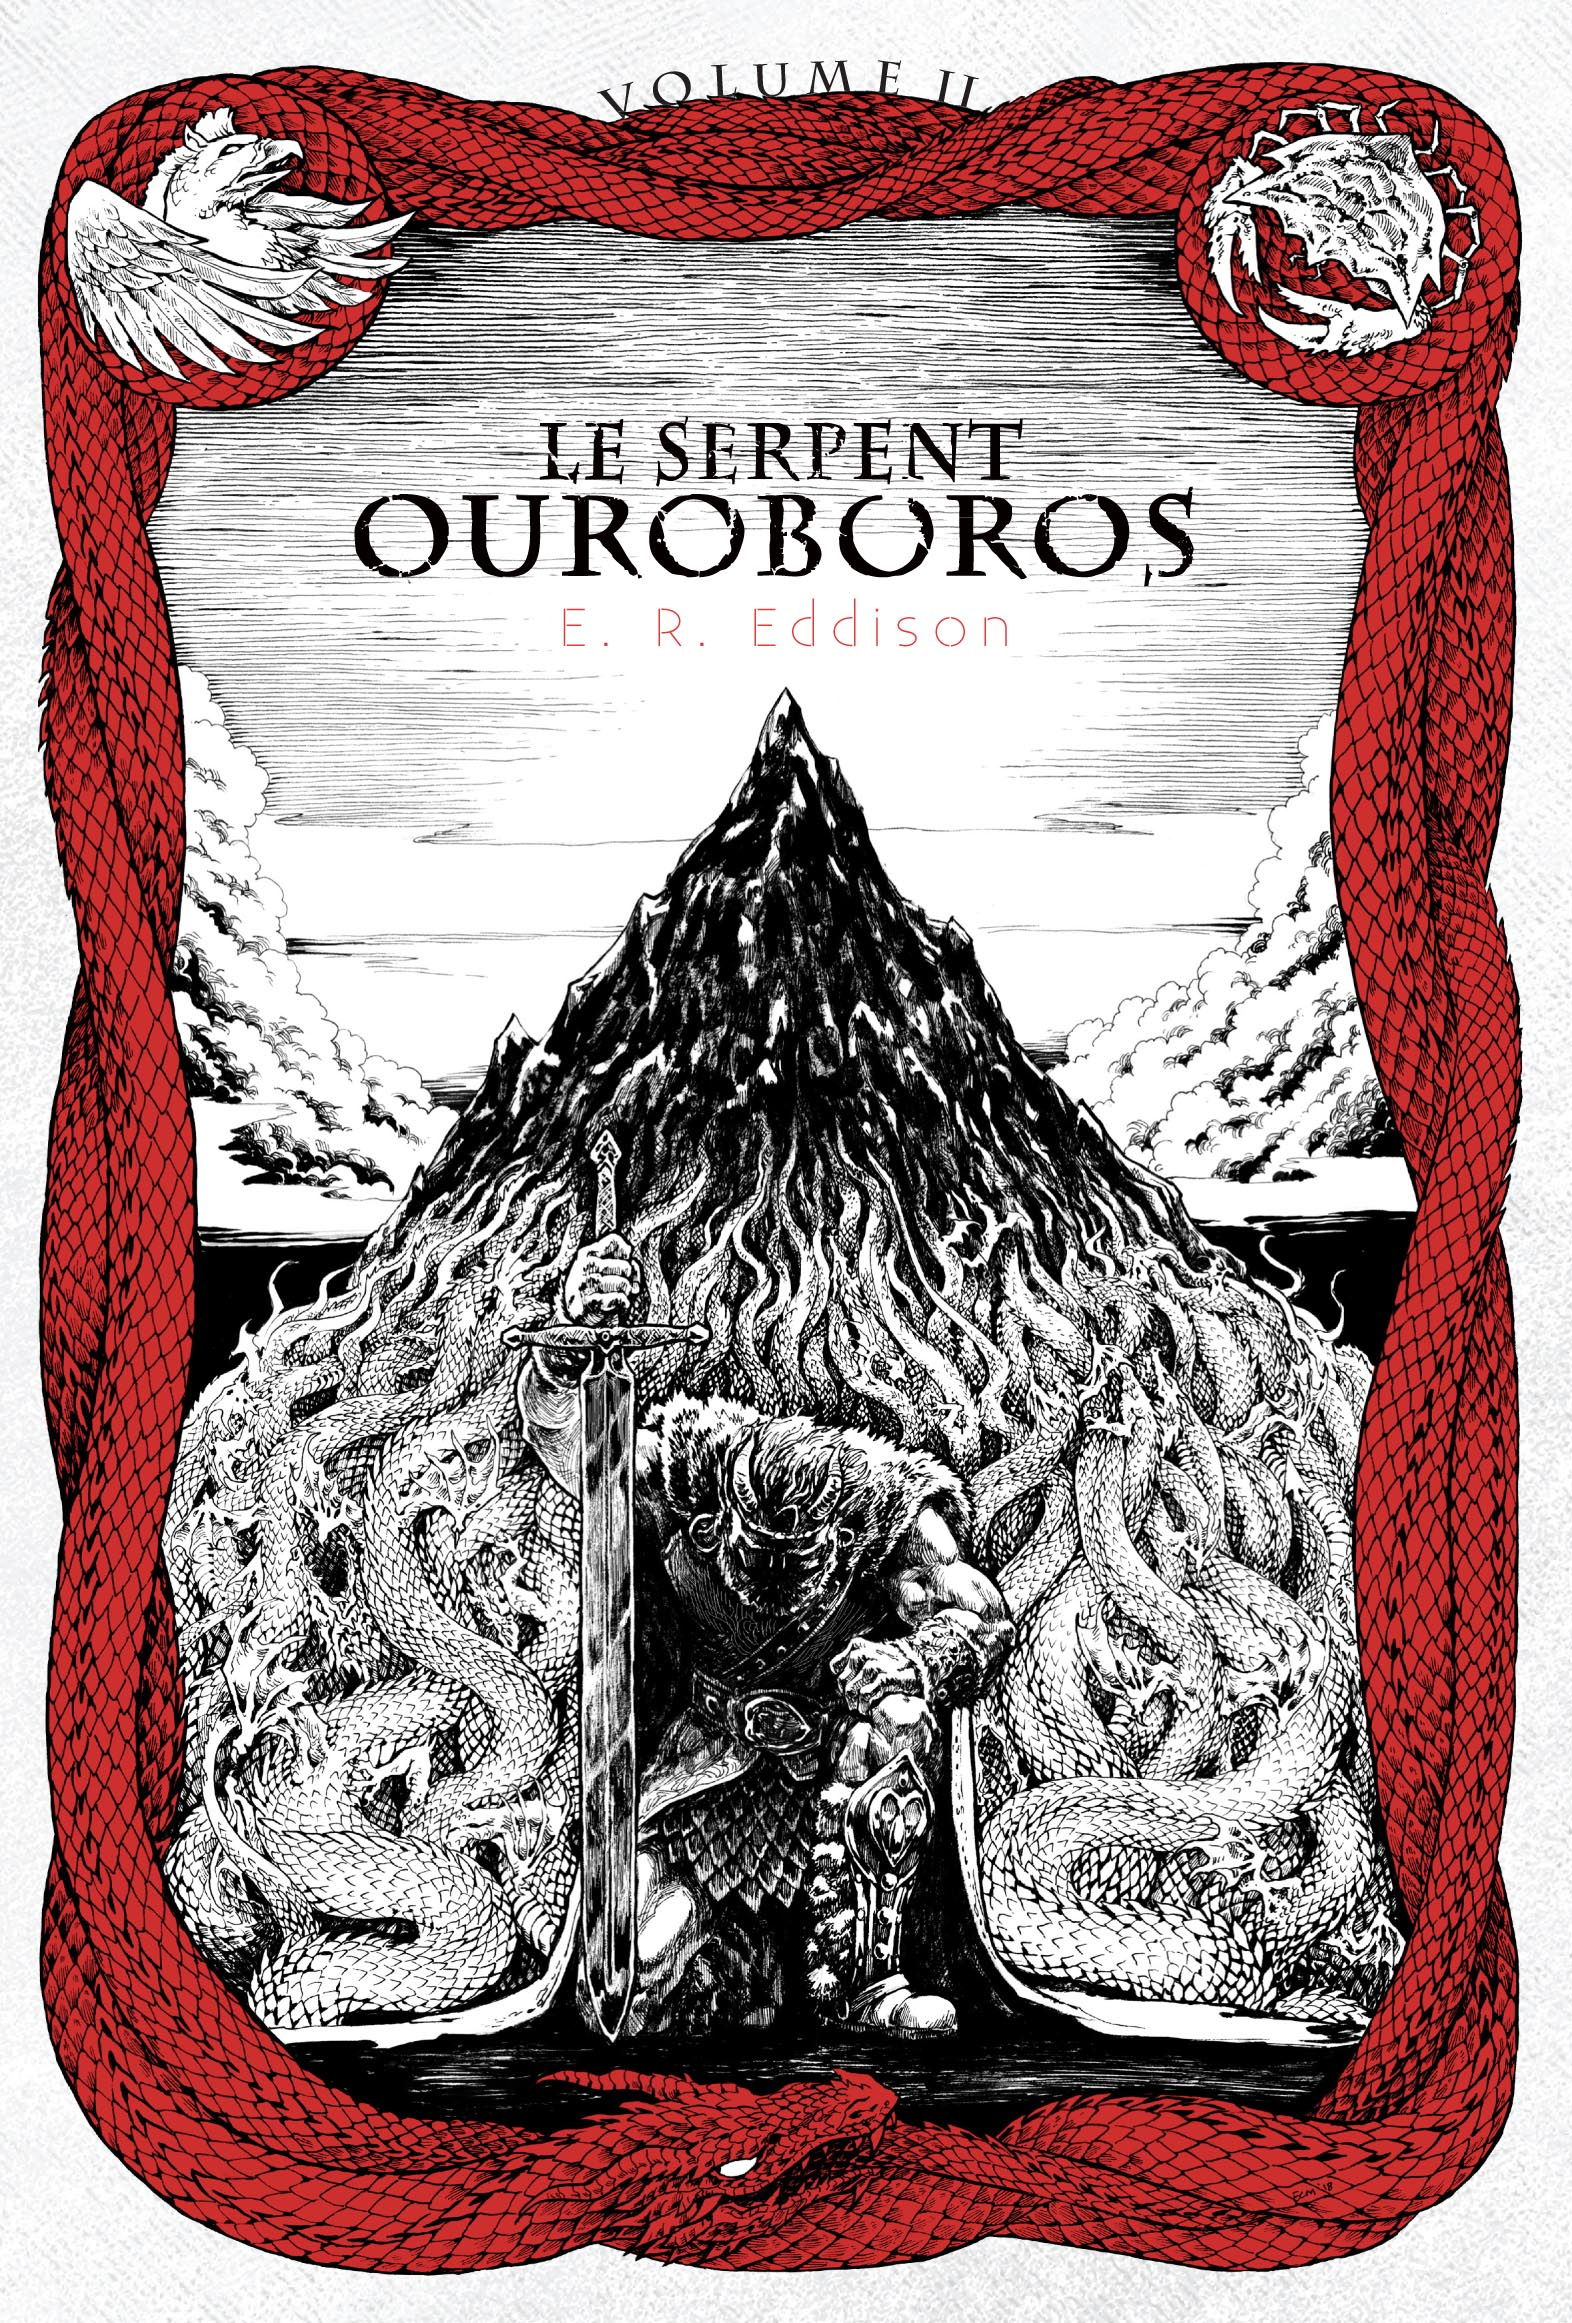 Le Serpent Ouroboros volume 2